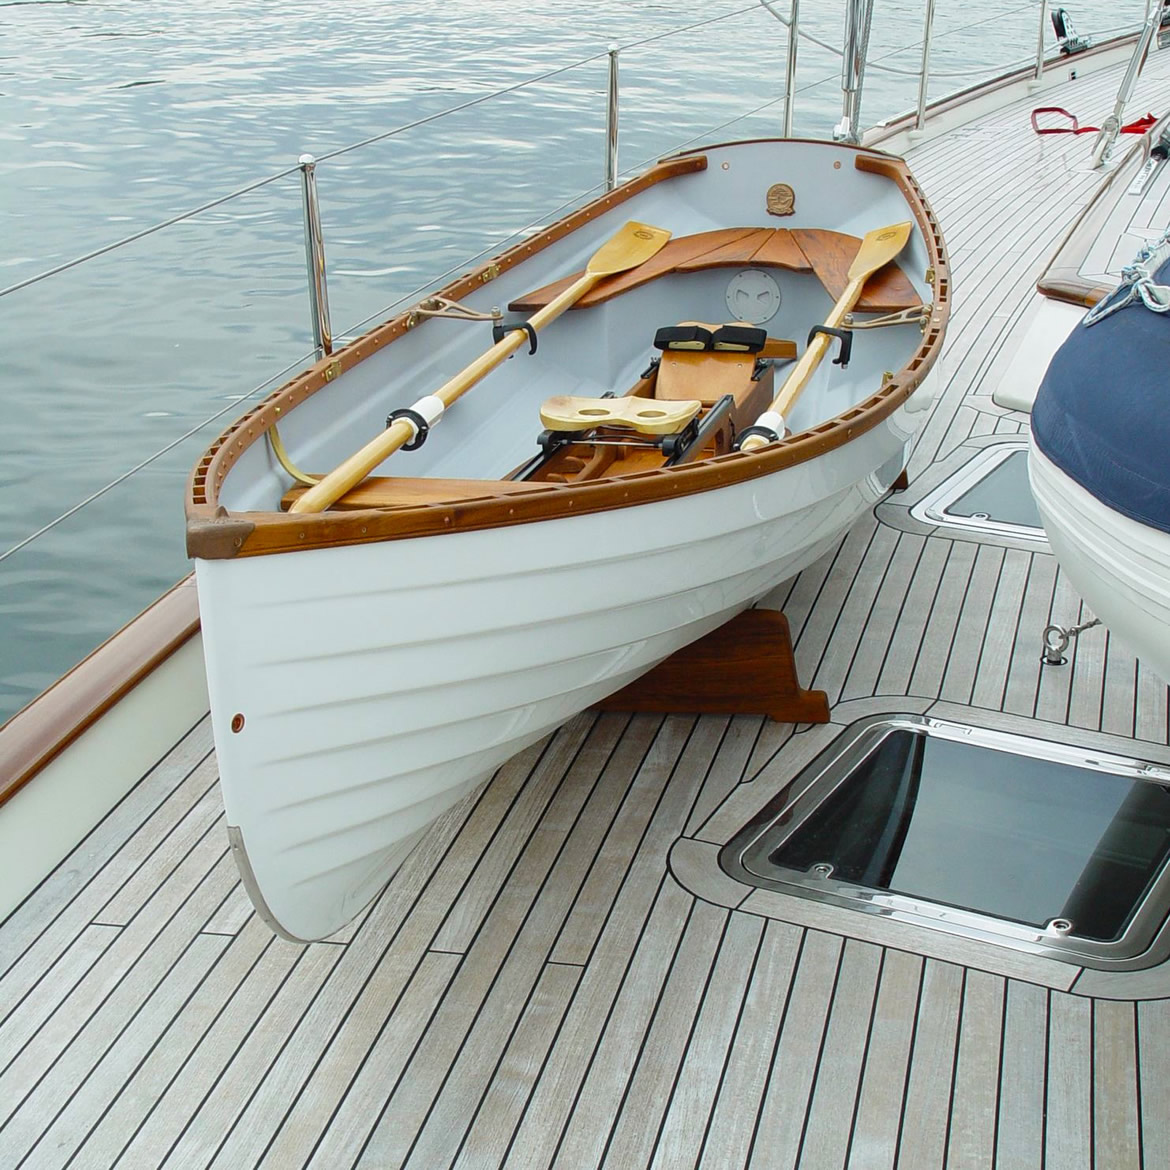 Whitehall-Spirit-14-on-deck-of-yacht-rowboat-sailboat-Whitehall-Rowing-and-Sail-1170